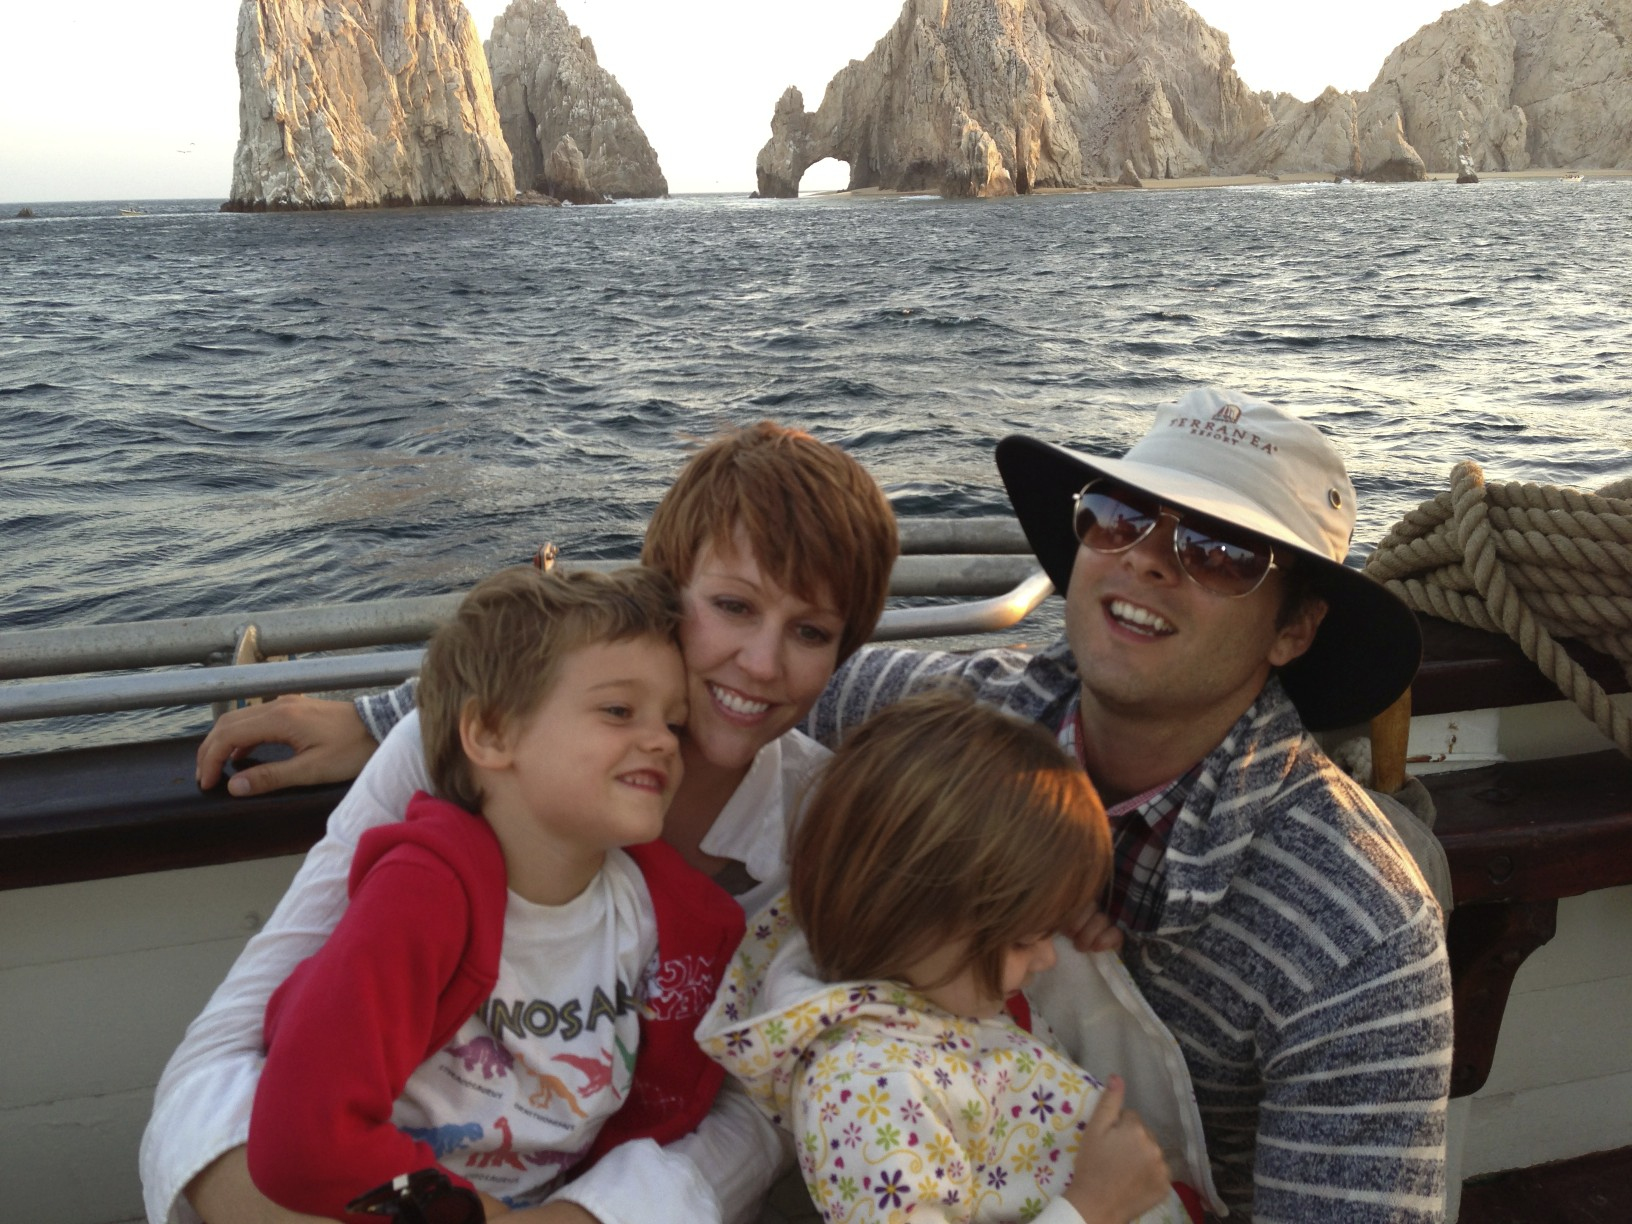 Mitch, Kristy, Astrid and James on our trip to Cabo San Lucas, Mexico.